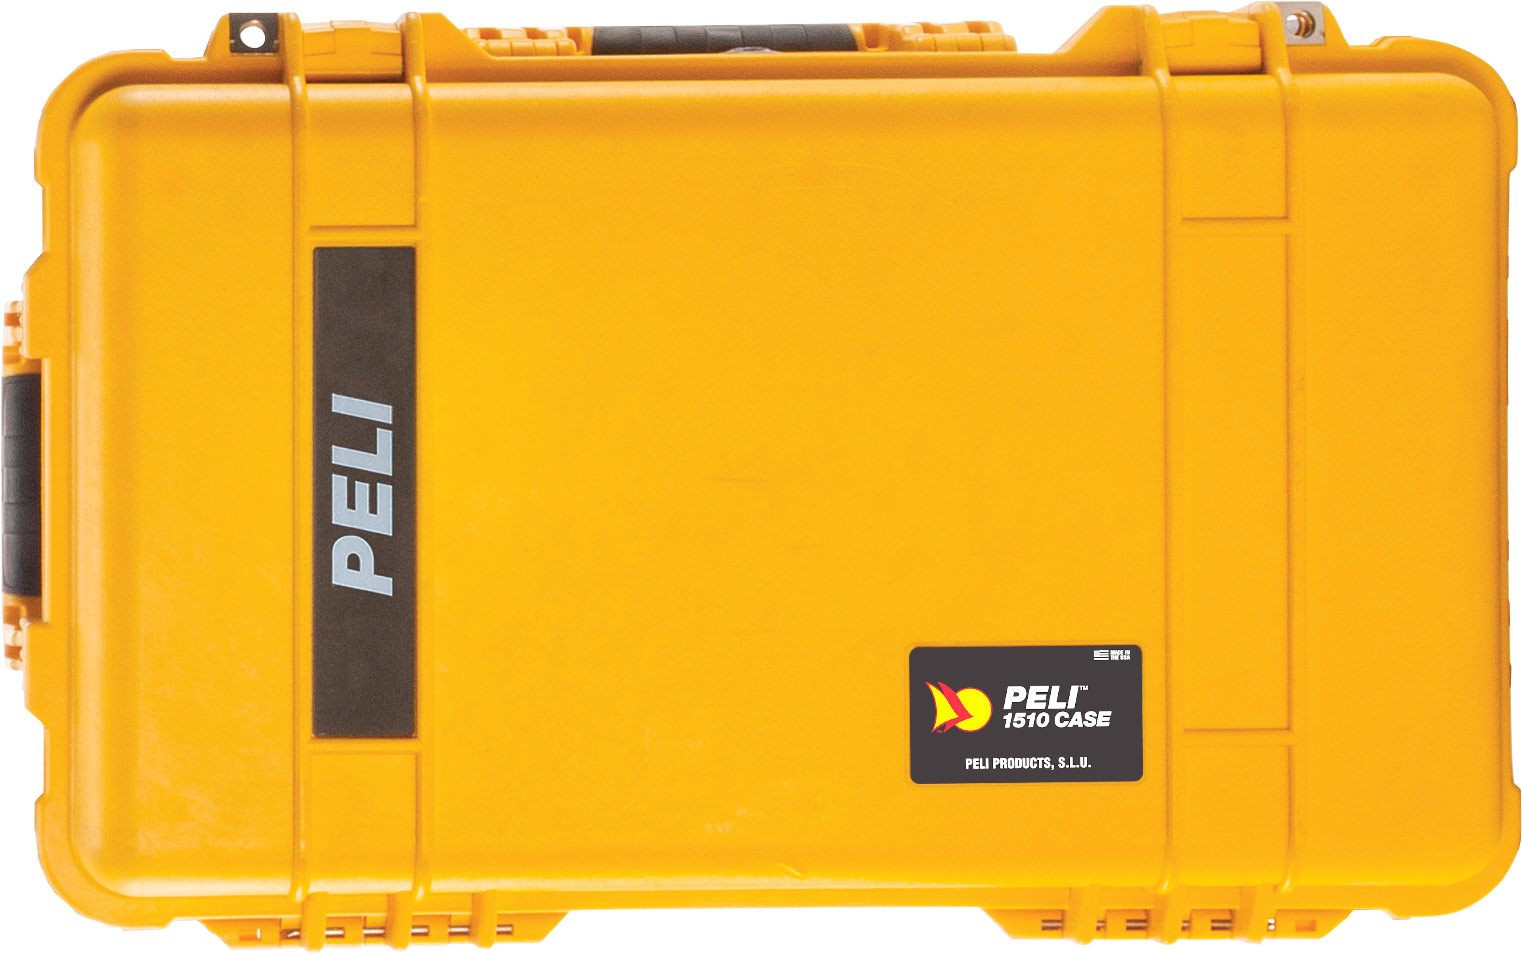 peli case 1510 yellow carry on cases